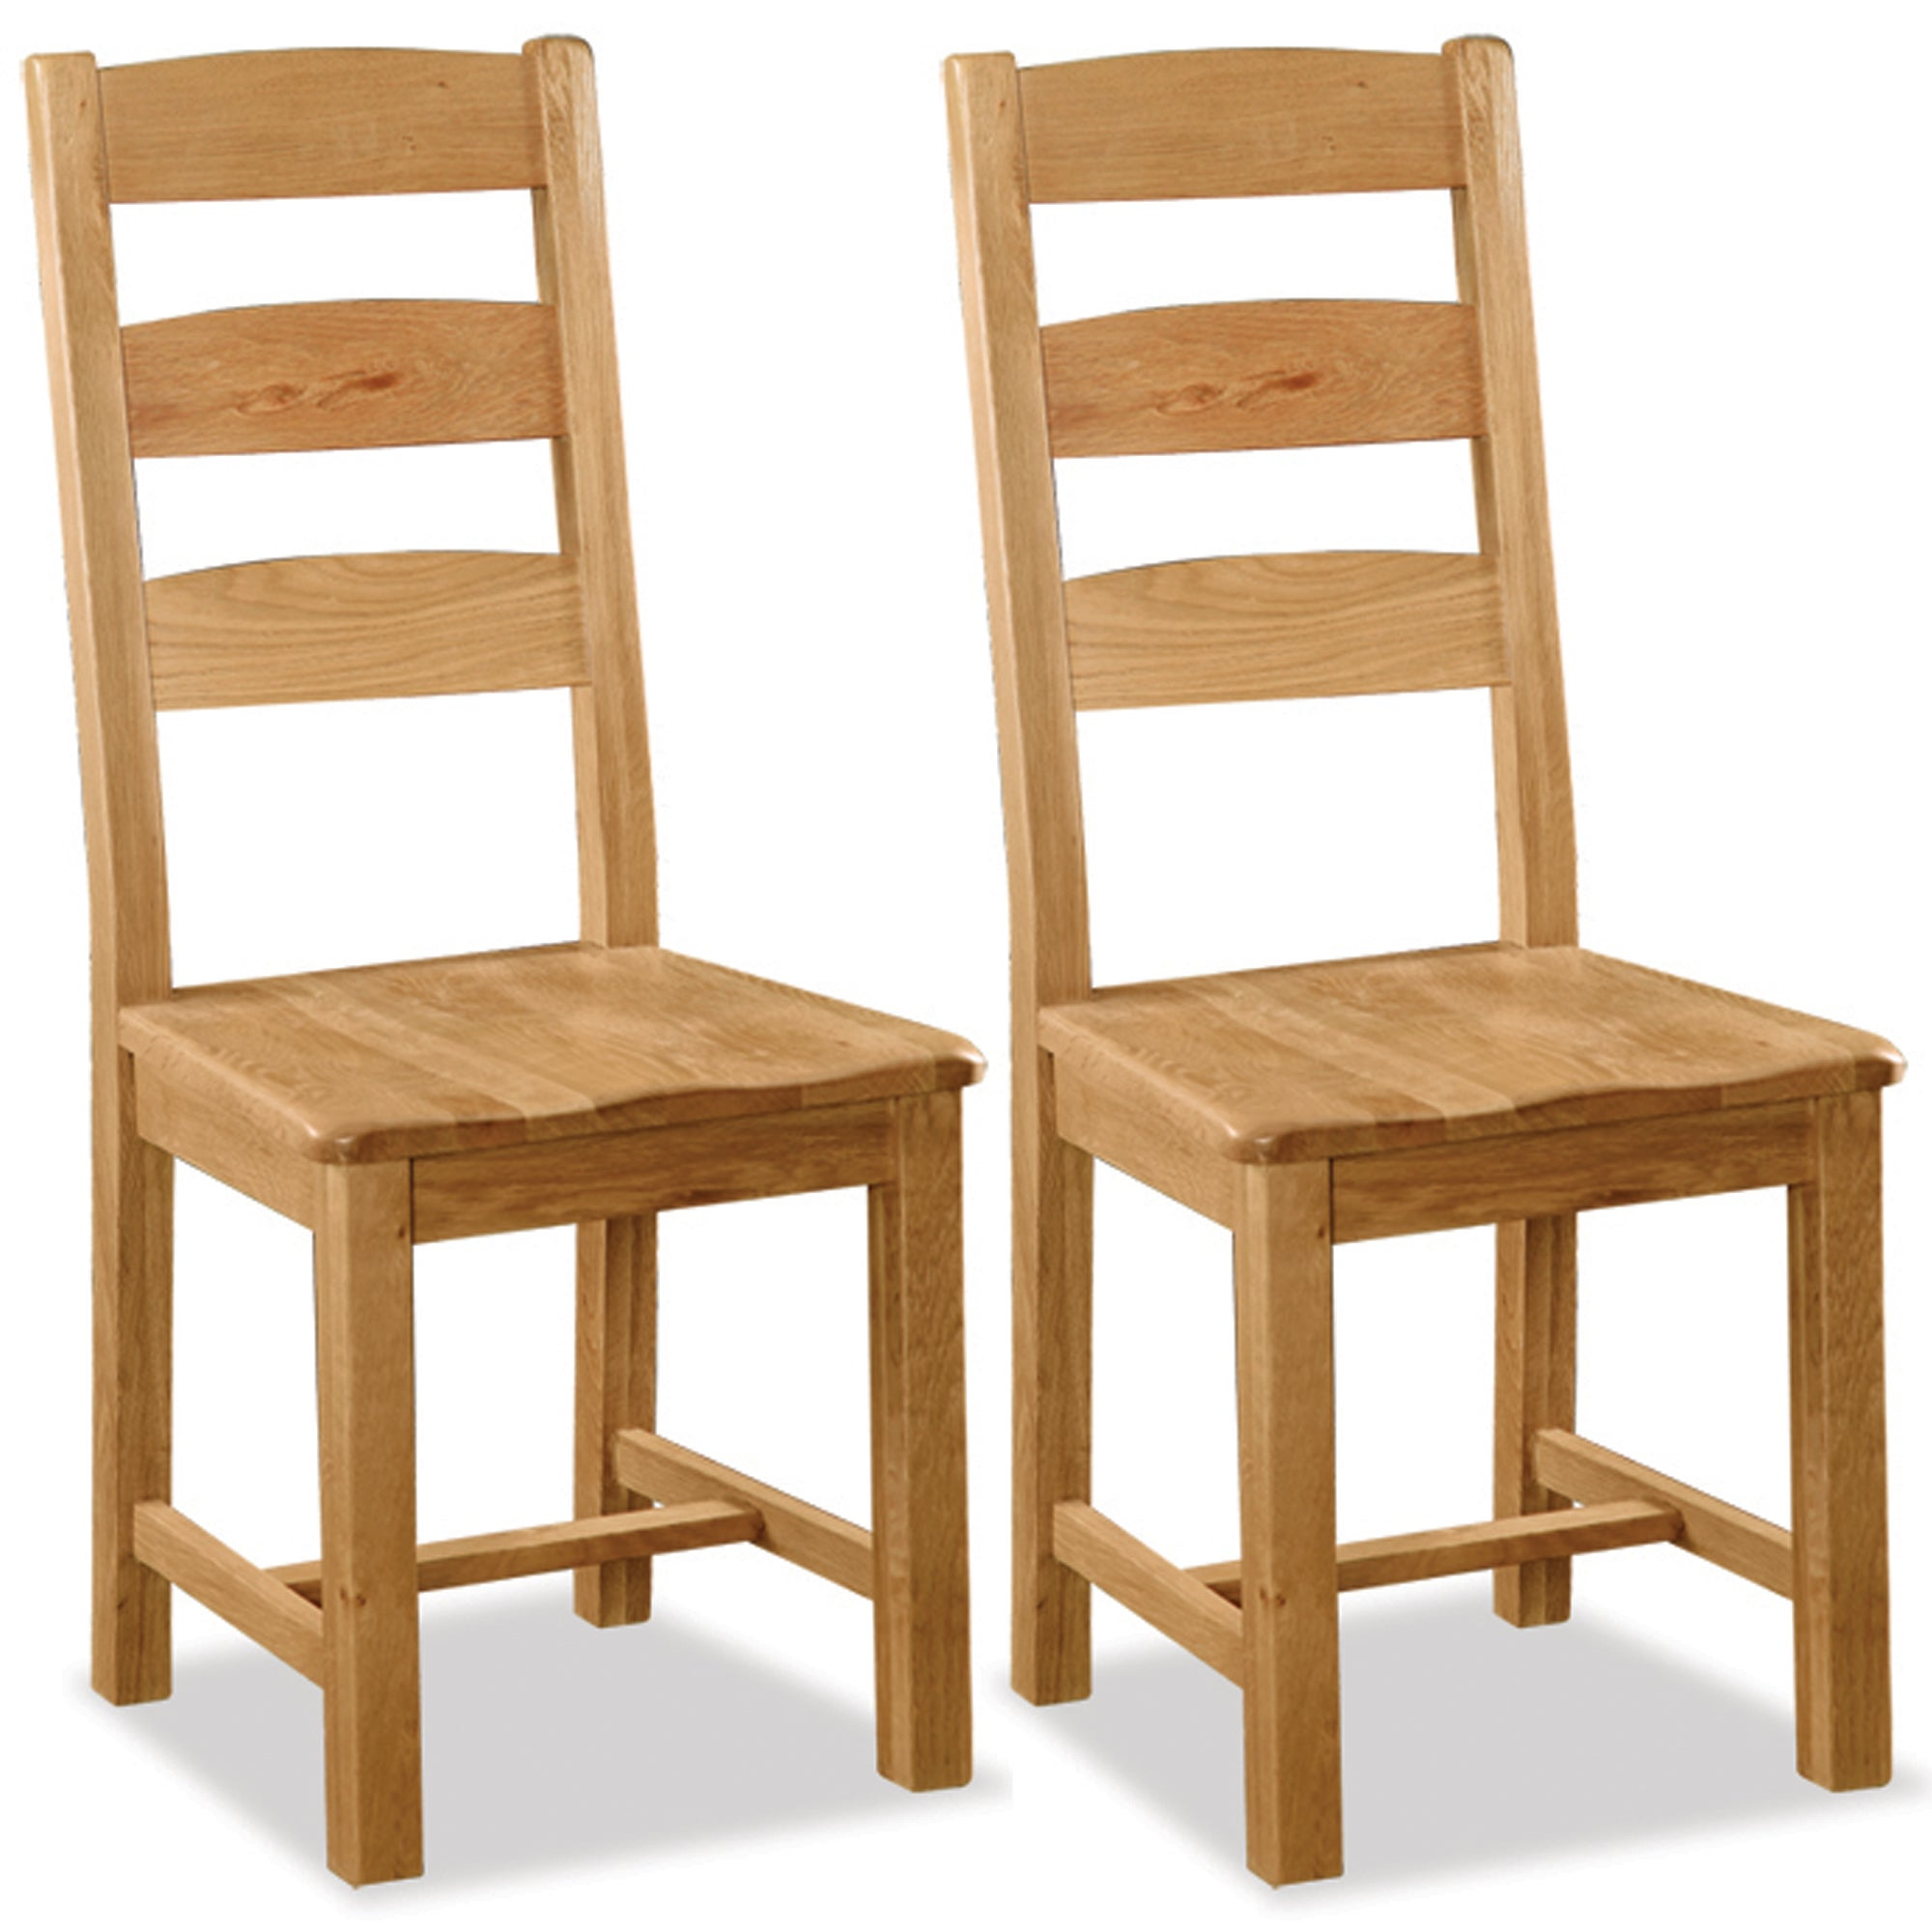 Chichester Pair of Oak Slatted Back Dining Chairs